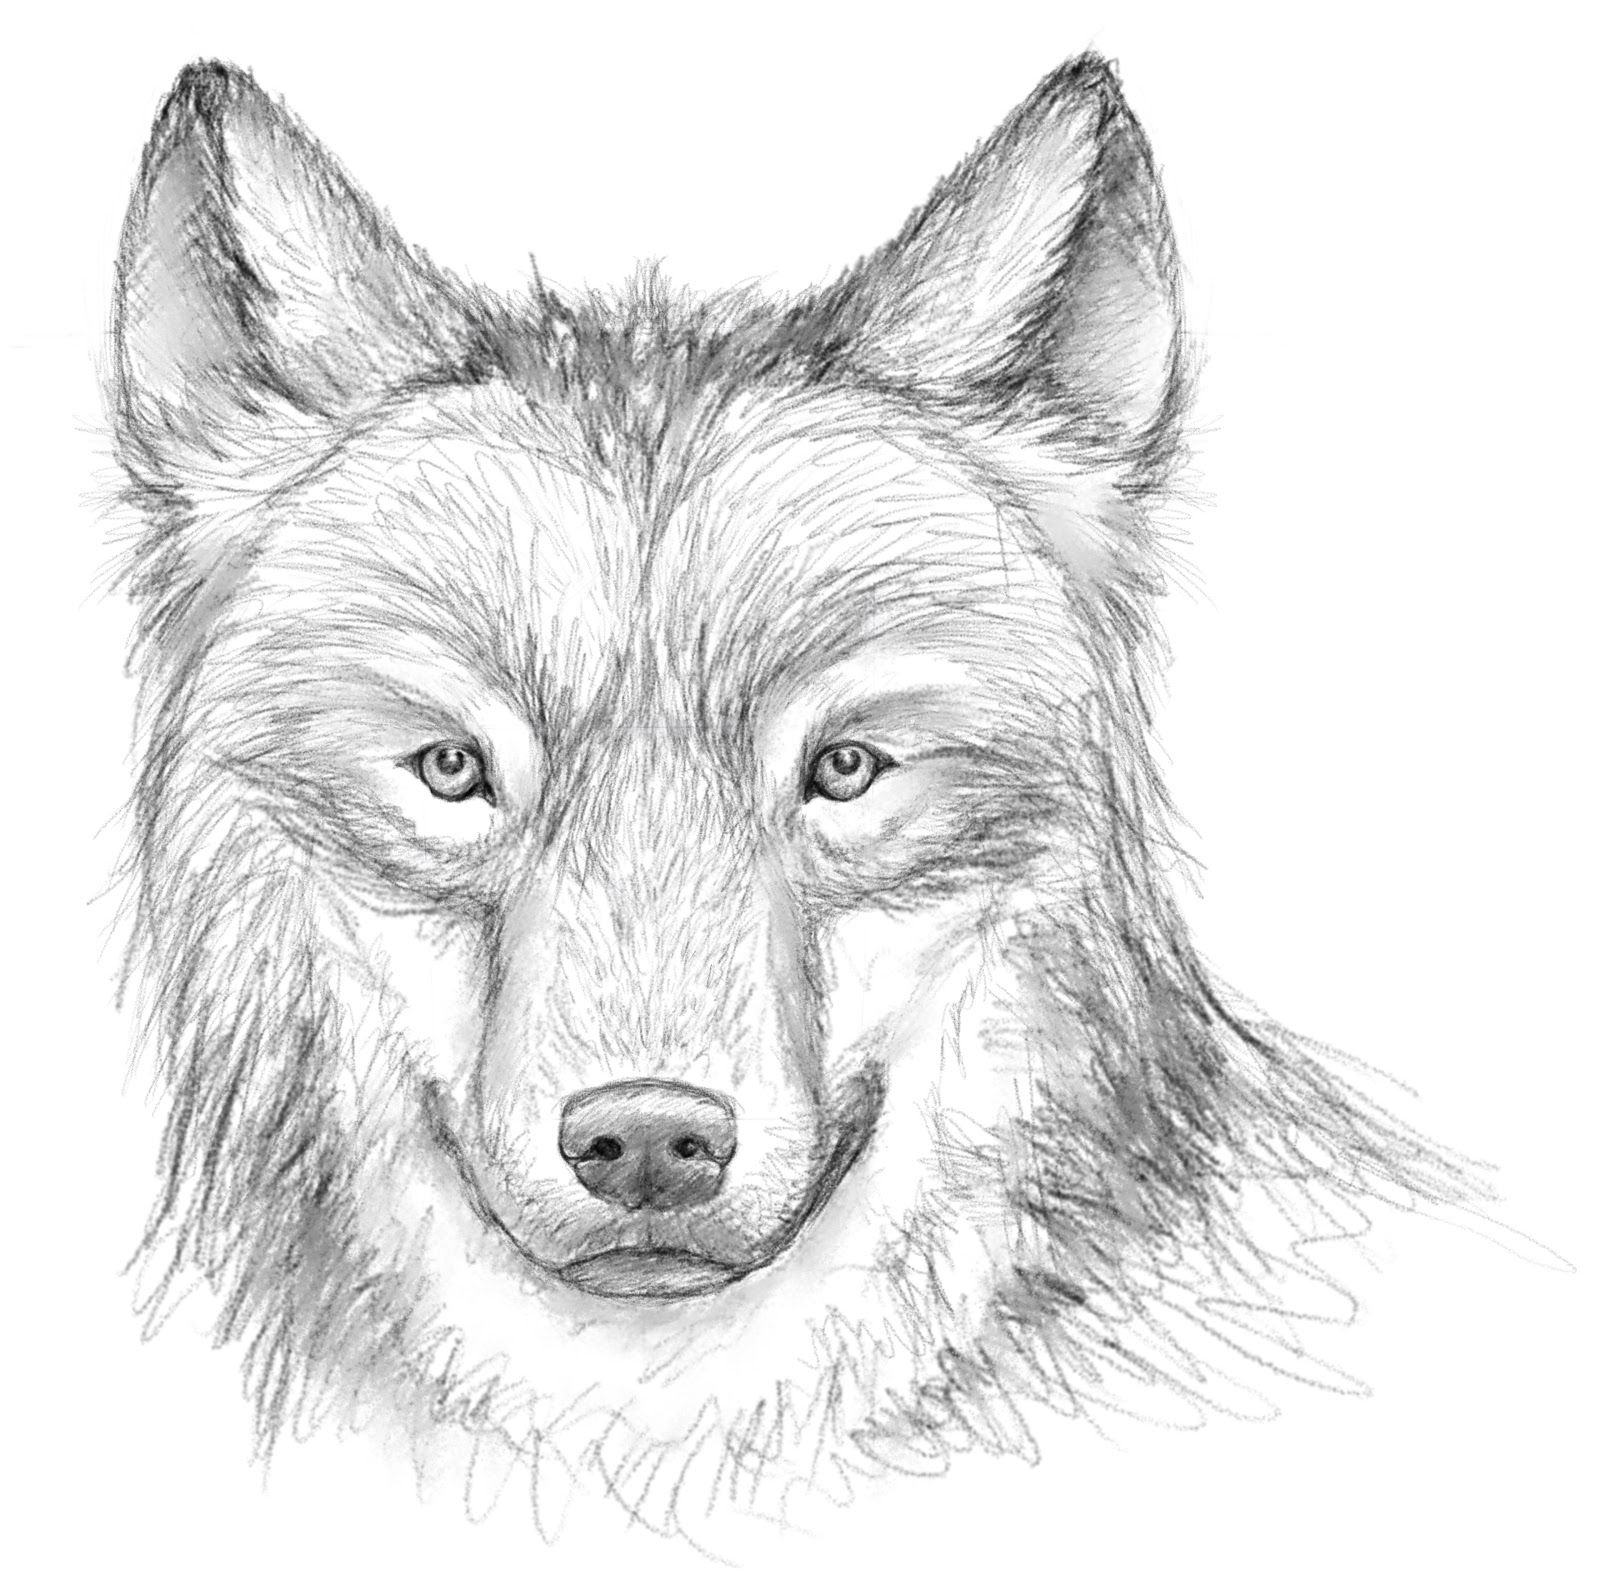 Dessin loup cr ation animaux 2 pinterest dessin loup - Loup a dessiner ...